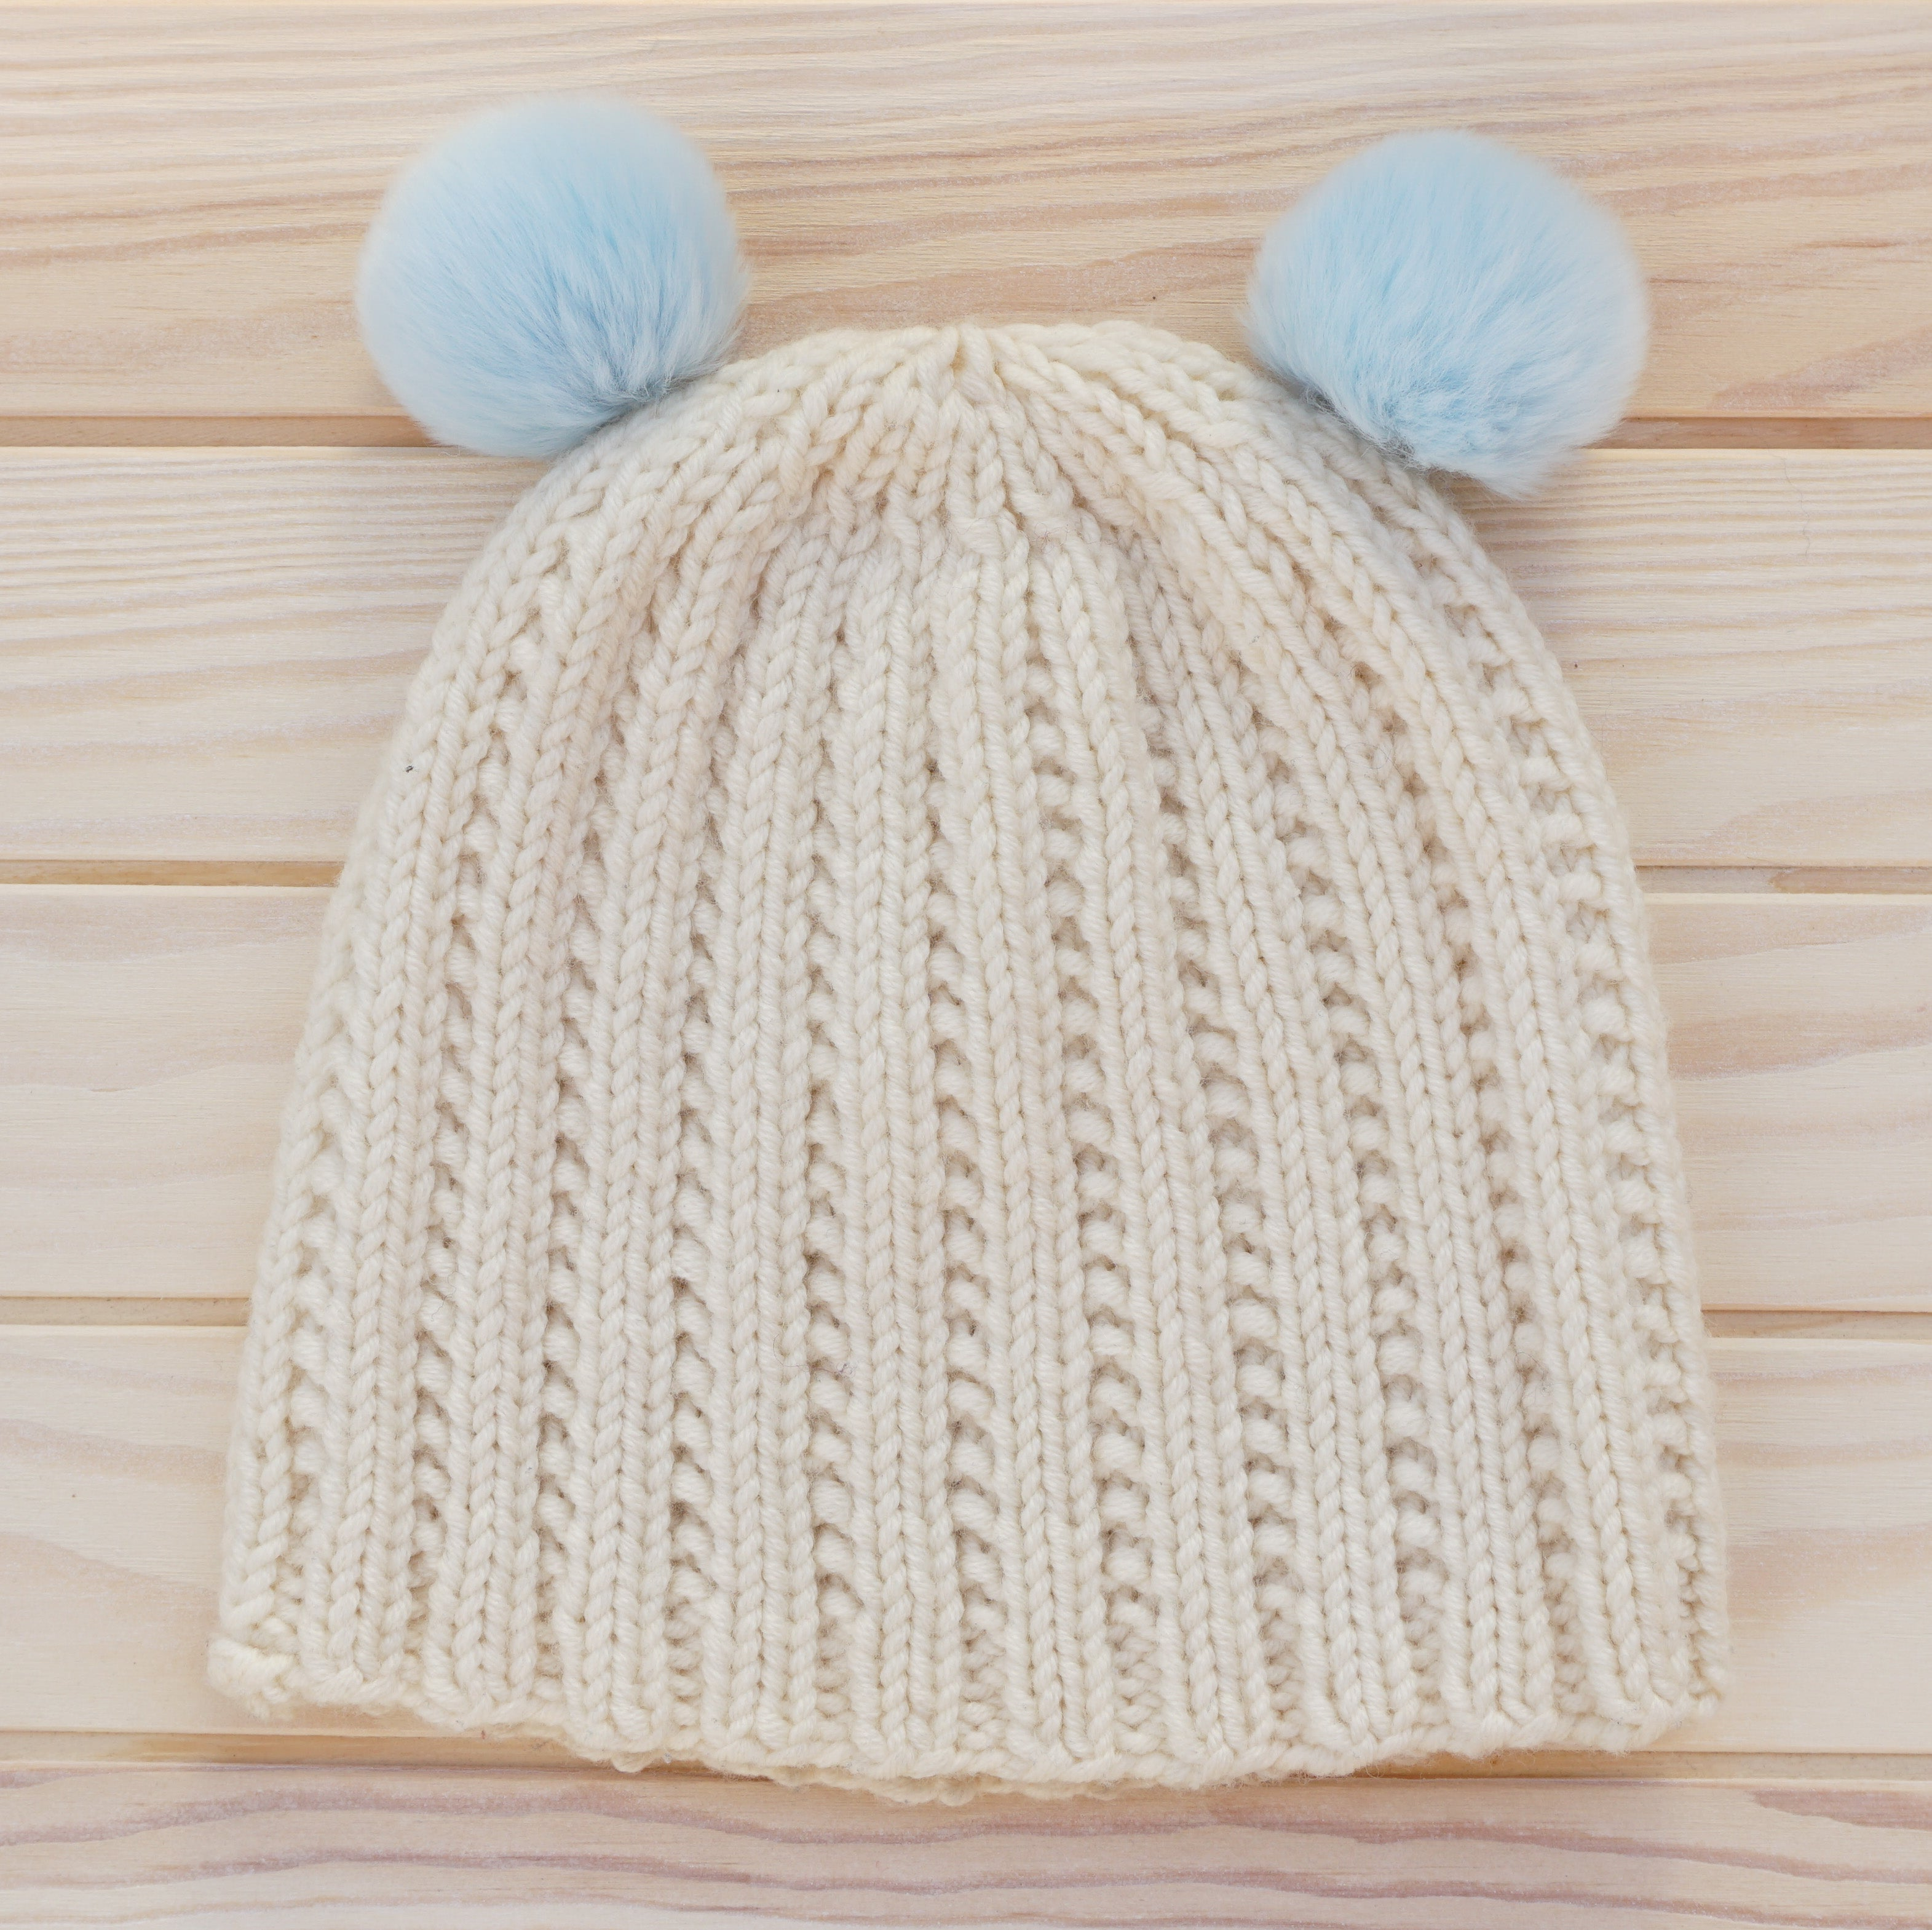 kaninchenfell pompon